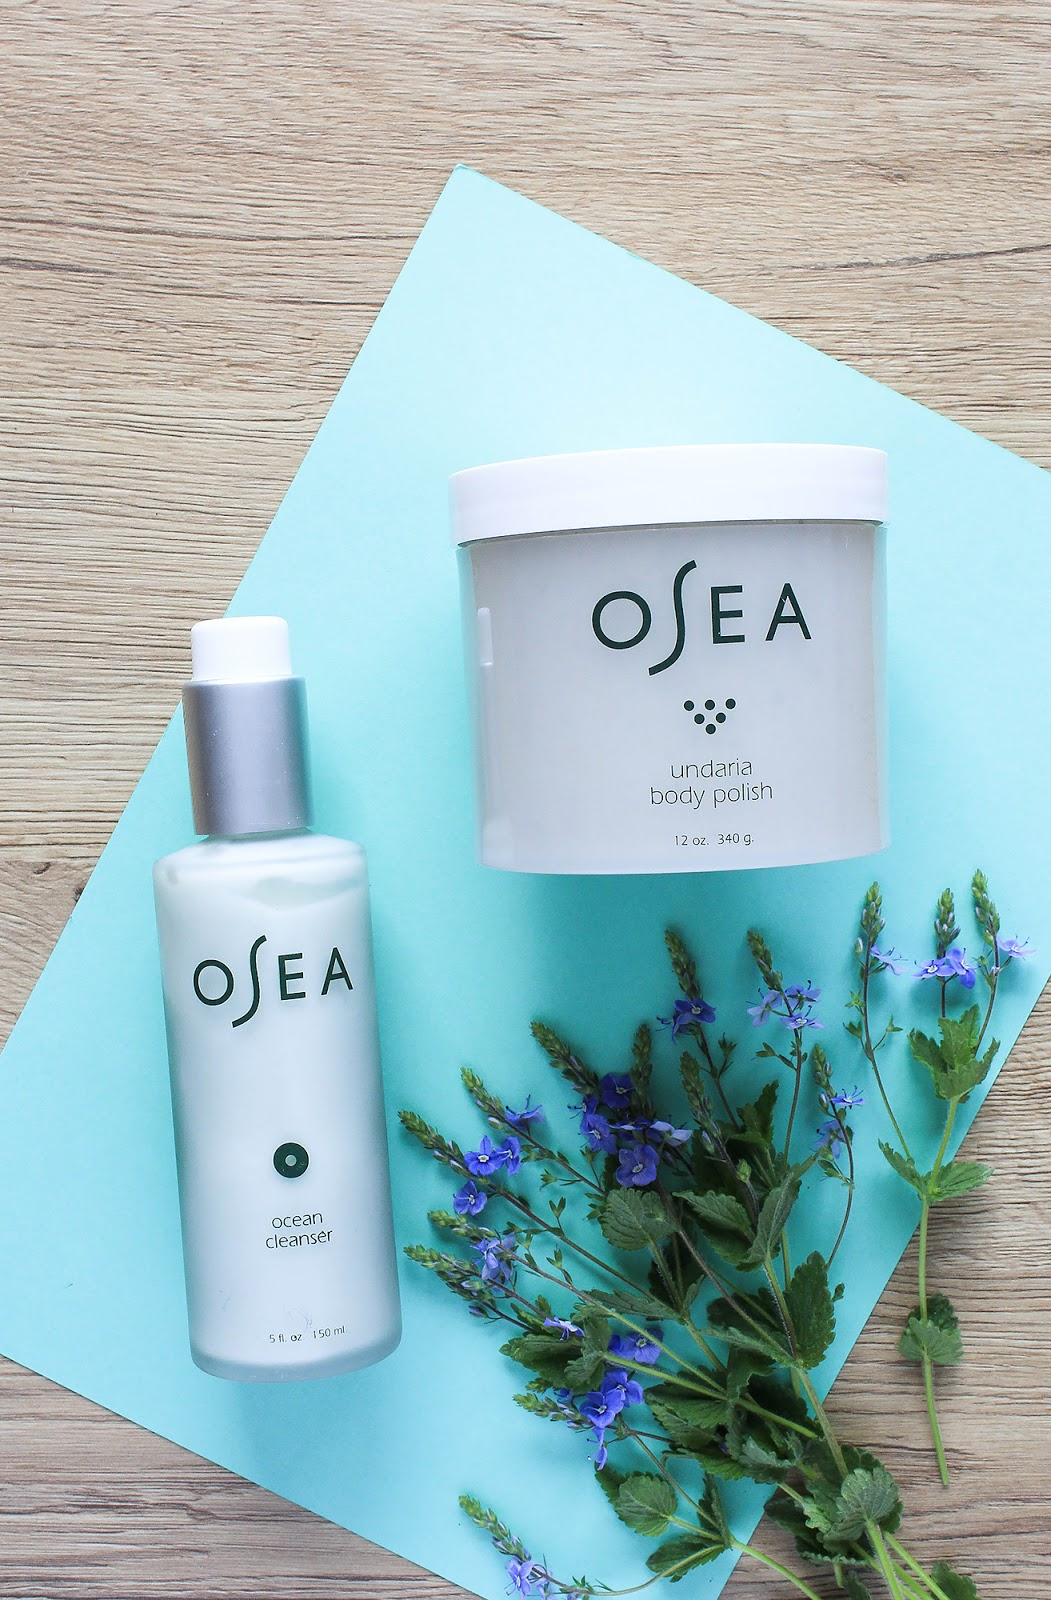 OSEA Ocean Cleanser, Undaria Body Polish. Beauty Heroes Beauty Discovery May 2018.